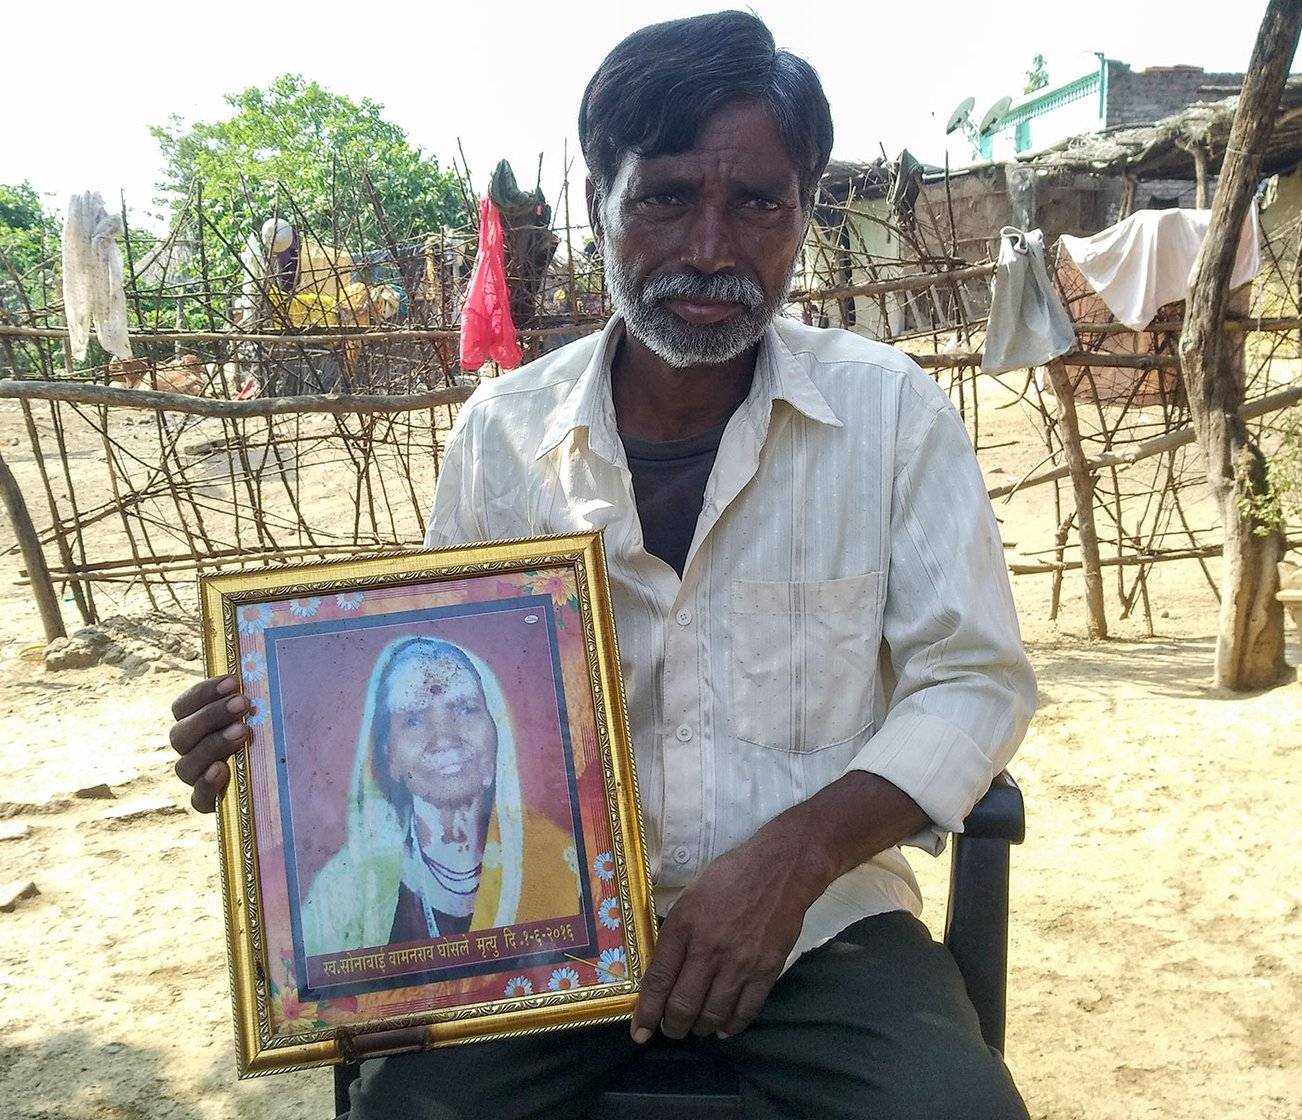 Subhash Ghosale, a tribal farmer in village Borati, holds the photo of her mother Sonabai Ghosale, T1's first victim. She died in T1's attack on her field close to the village on June 1, 2016